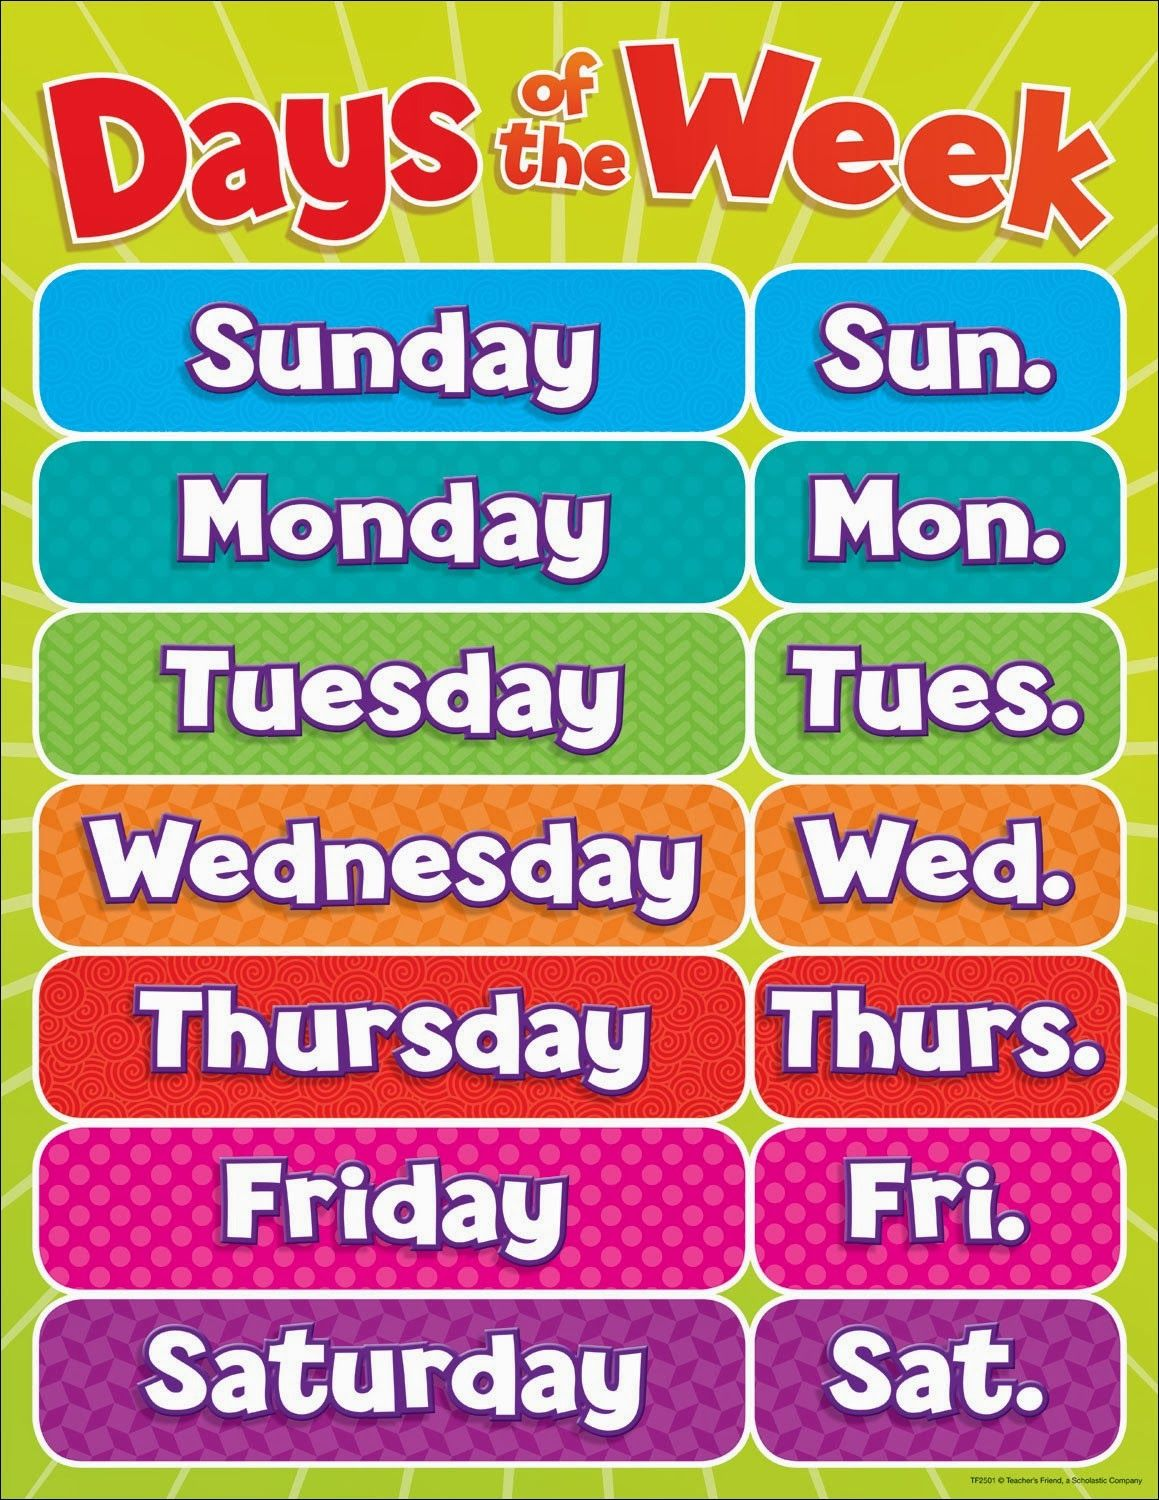 The Seven Days Of The Week Derive Their Names From The